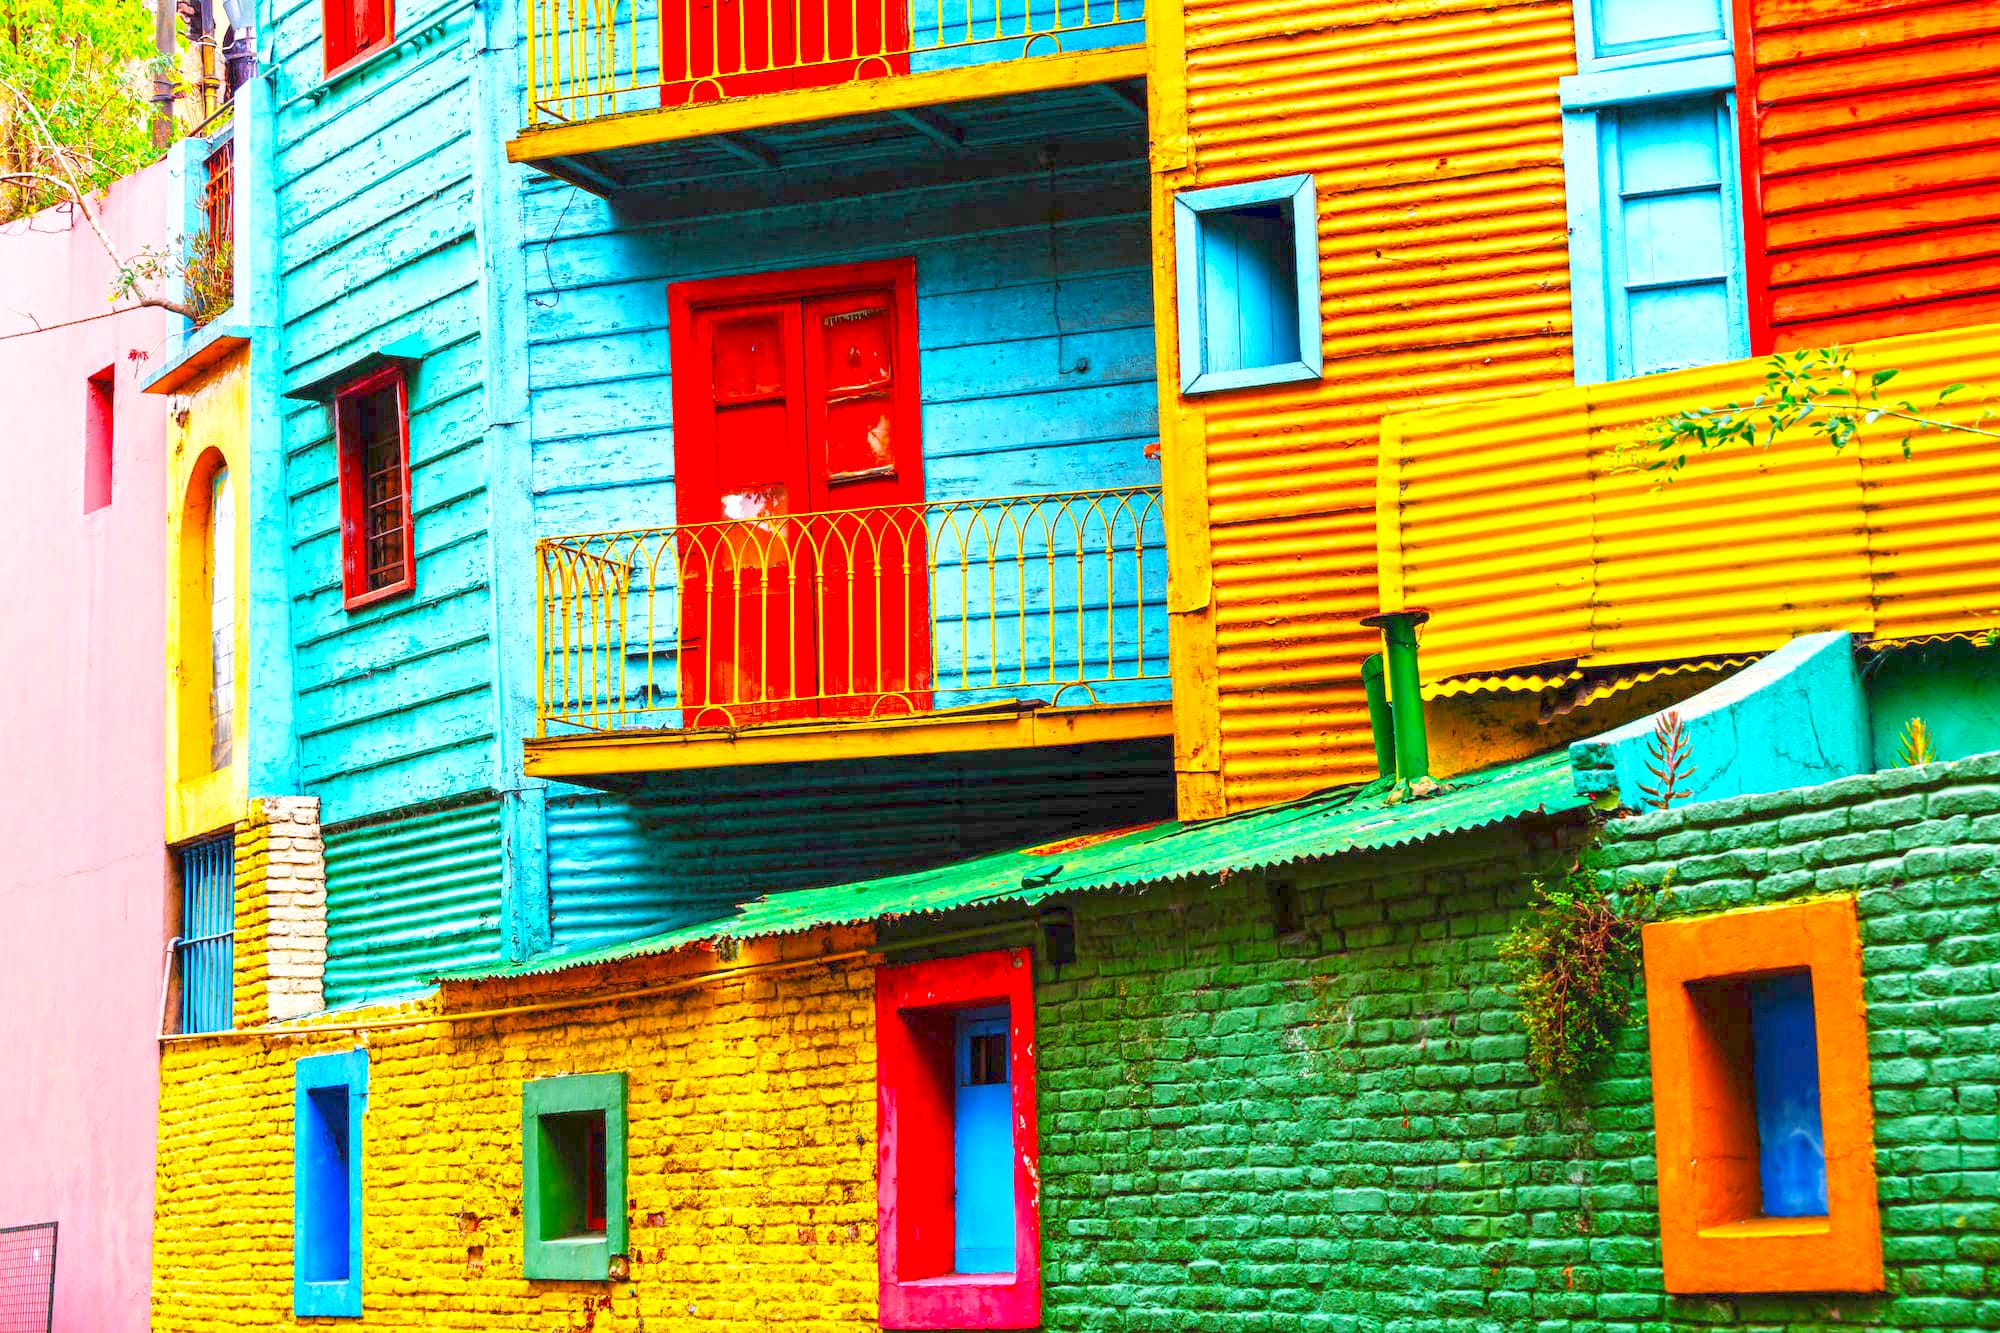 La-Boca-best-place-to-visit-in-Buenos-Aires